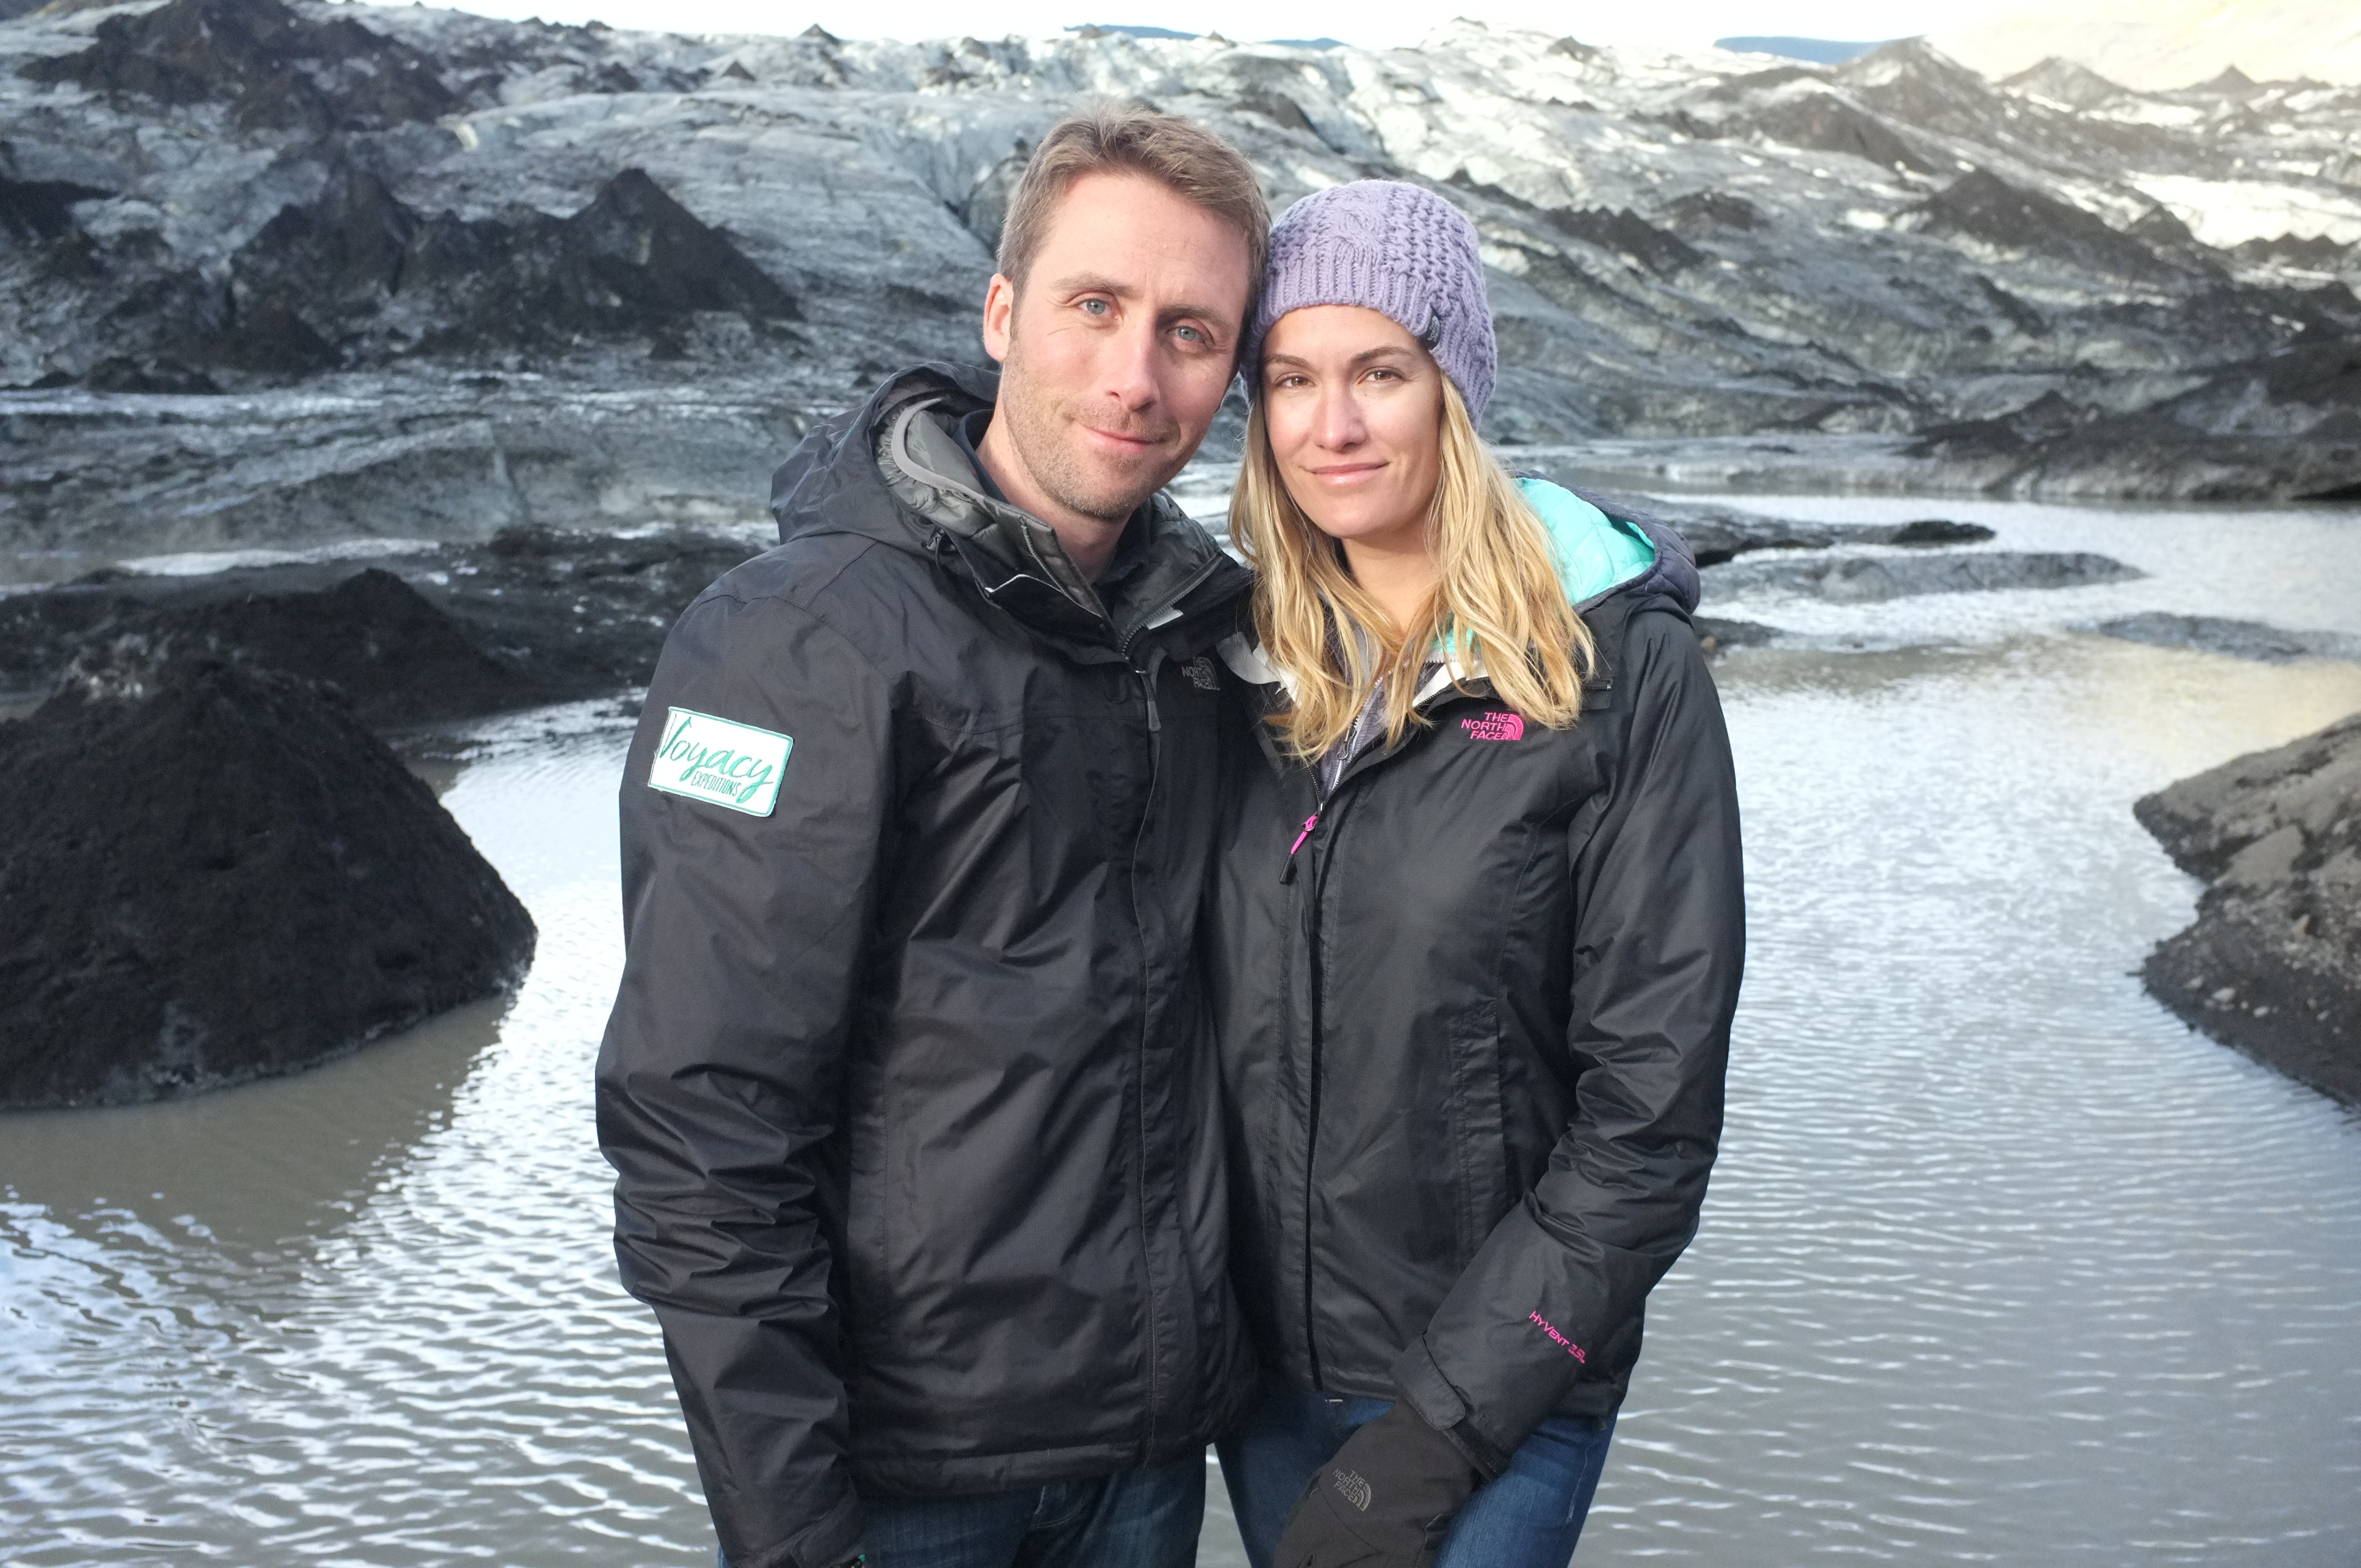 Ashlan and Philippe in Iceland. Photo Courtesy: Ashlan Cousteau